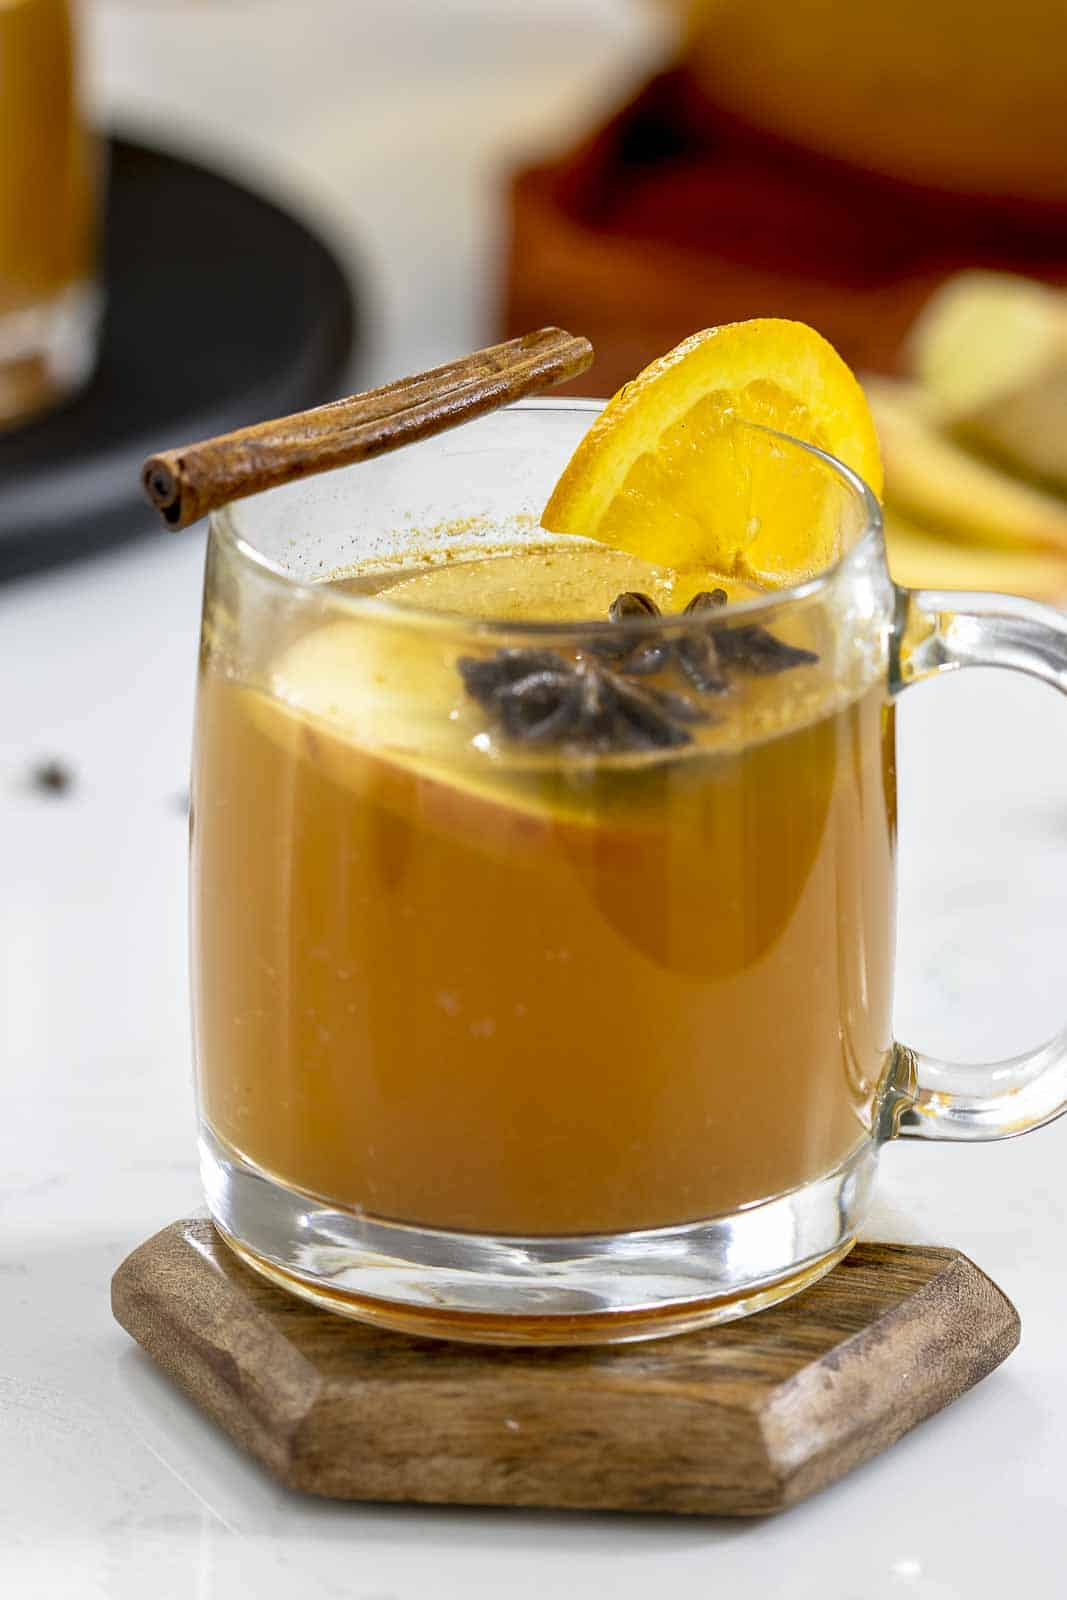 Hot mulled spiked apple cider in a clear mug.